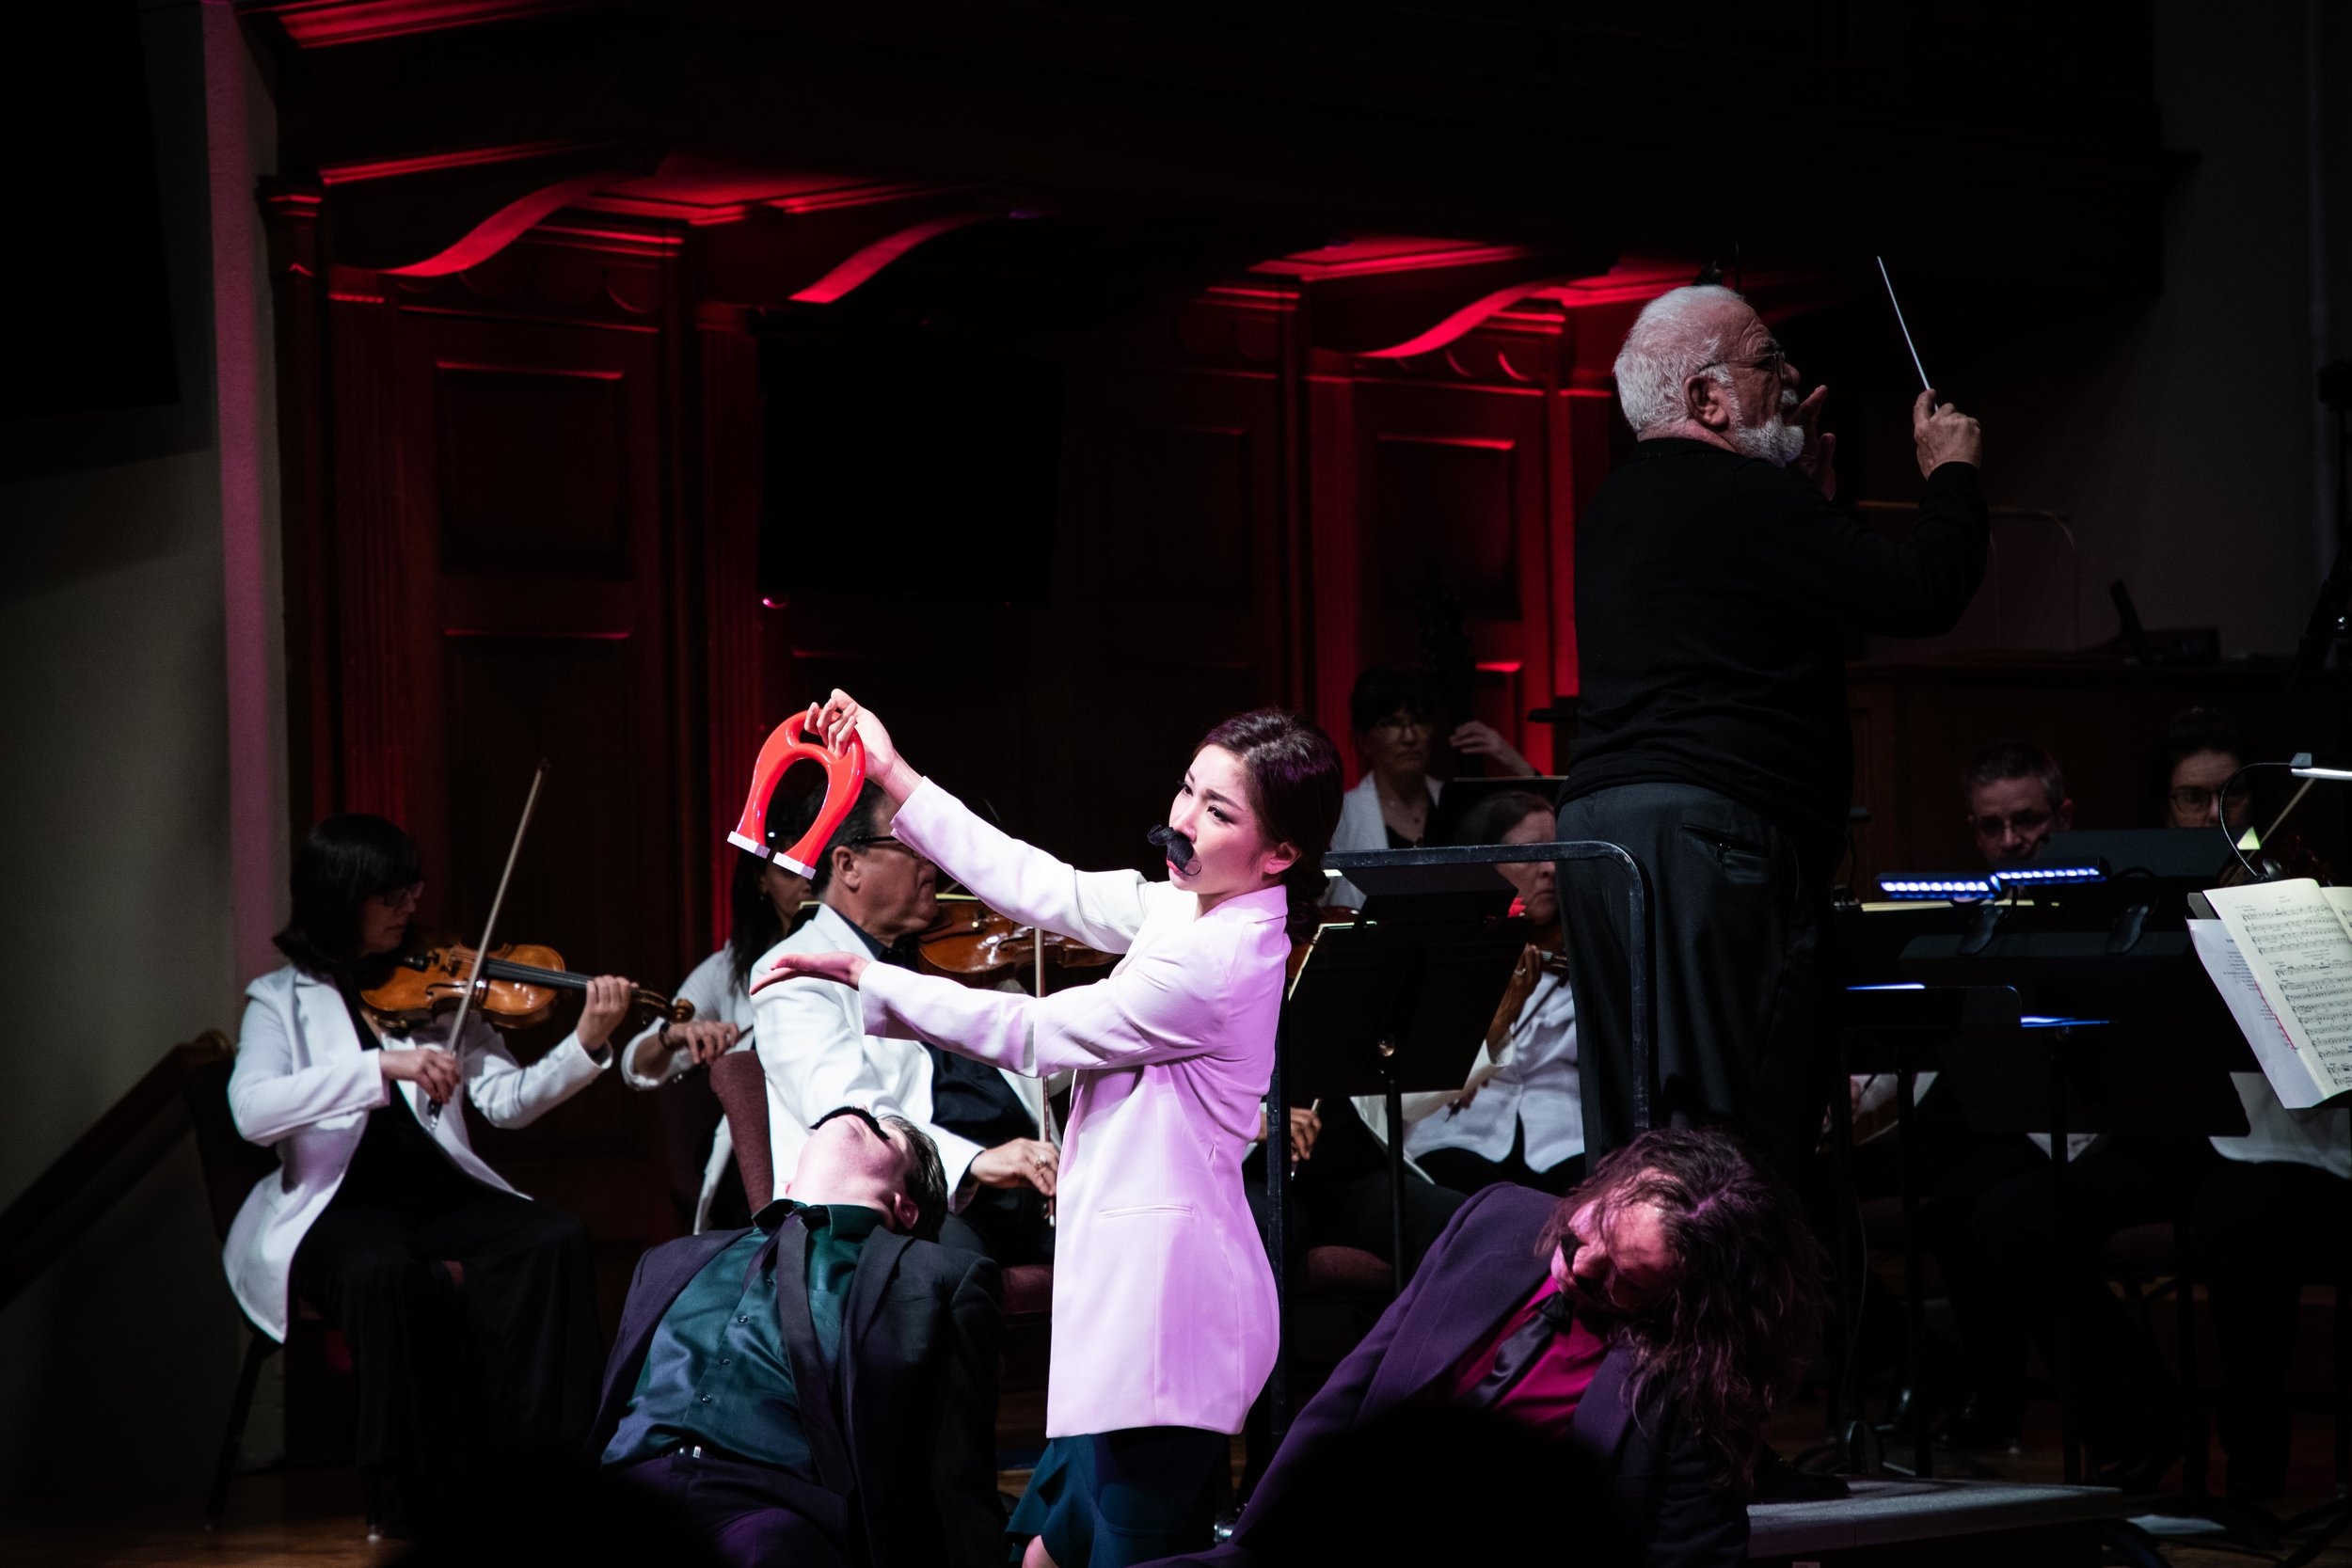 A comedic moment of  Cosi fan tutte ; soprano Nanyoung Song as Despina in disguise holds the magic cure for the passed out boys and, Conductor Louis Salemno holds the baton in the background. Photo by Sam Trotman; courtesy of Maryland Lyric Opera.